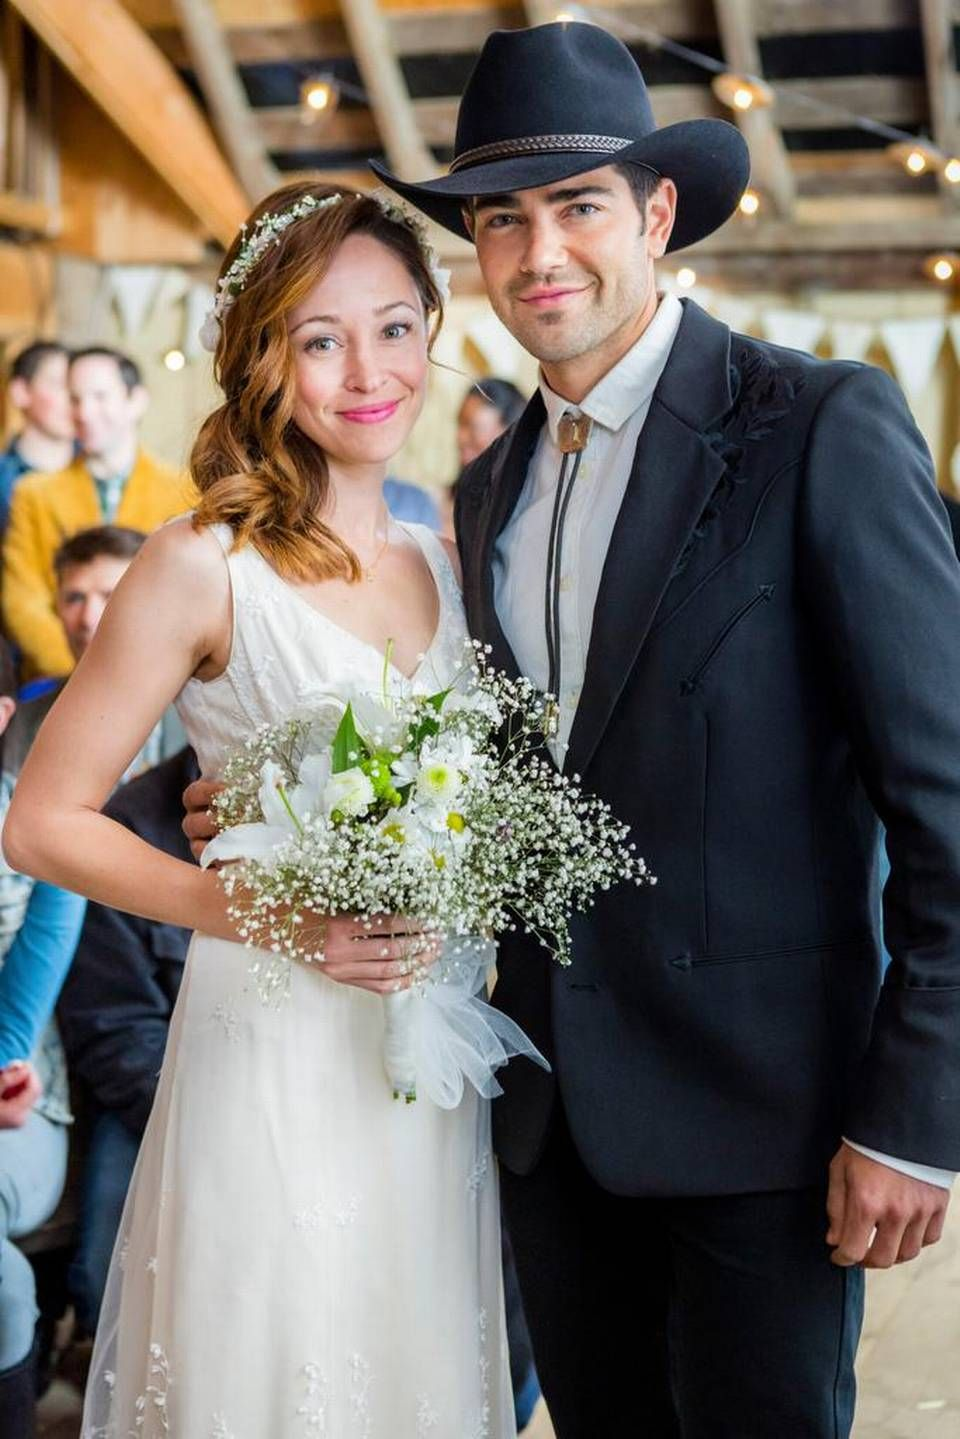 Autumn Reeser And Jesse Metcalfe In A Country Wedding